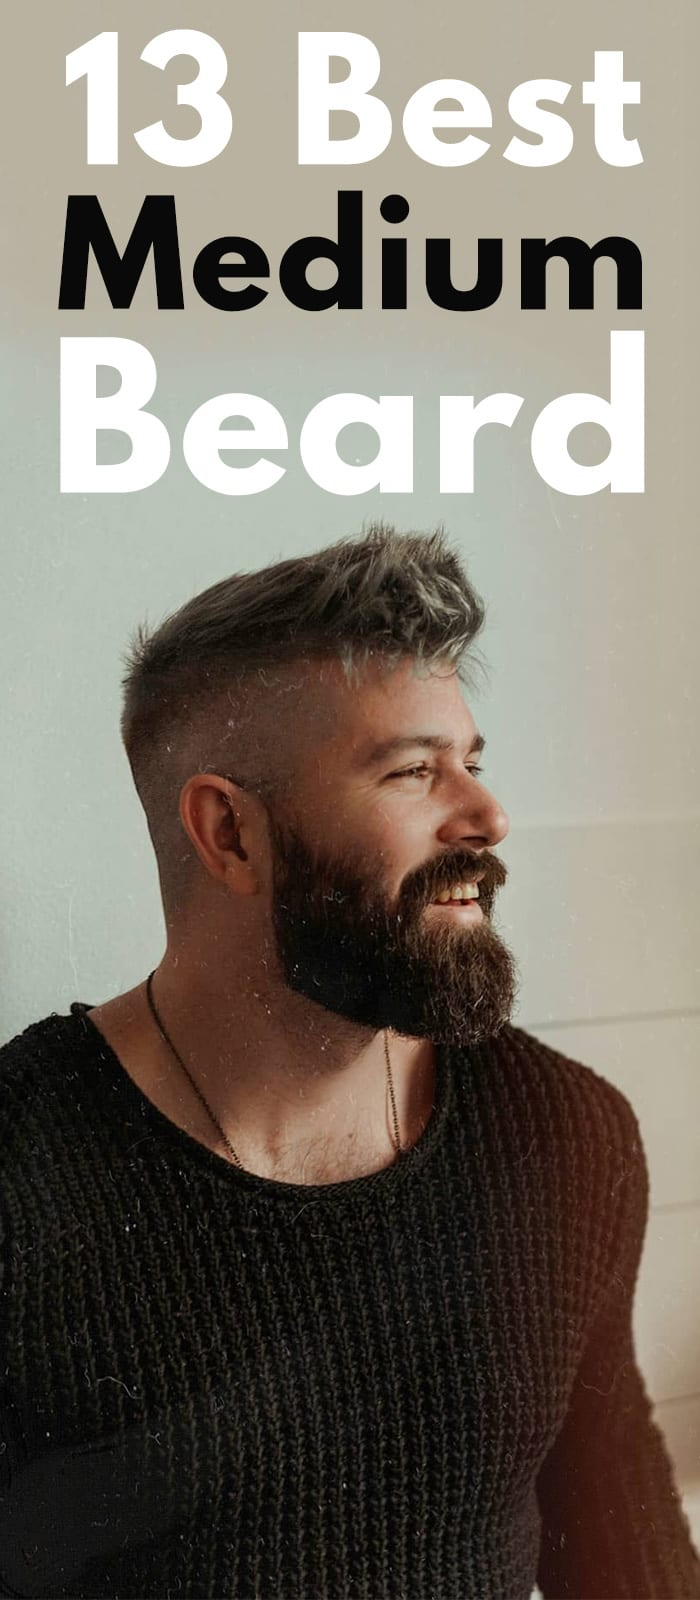 13 Best Medium Beard